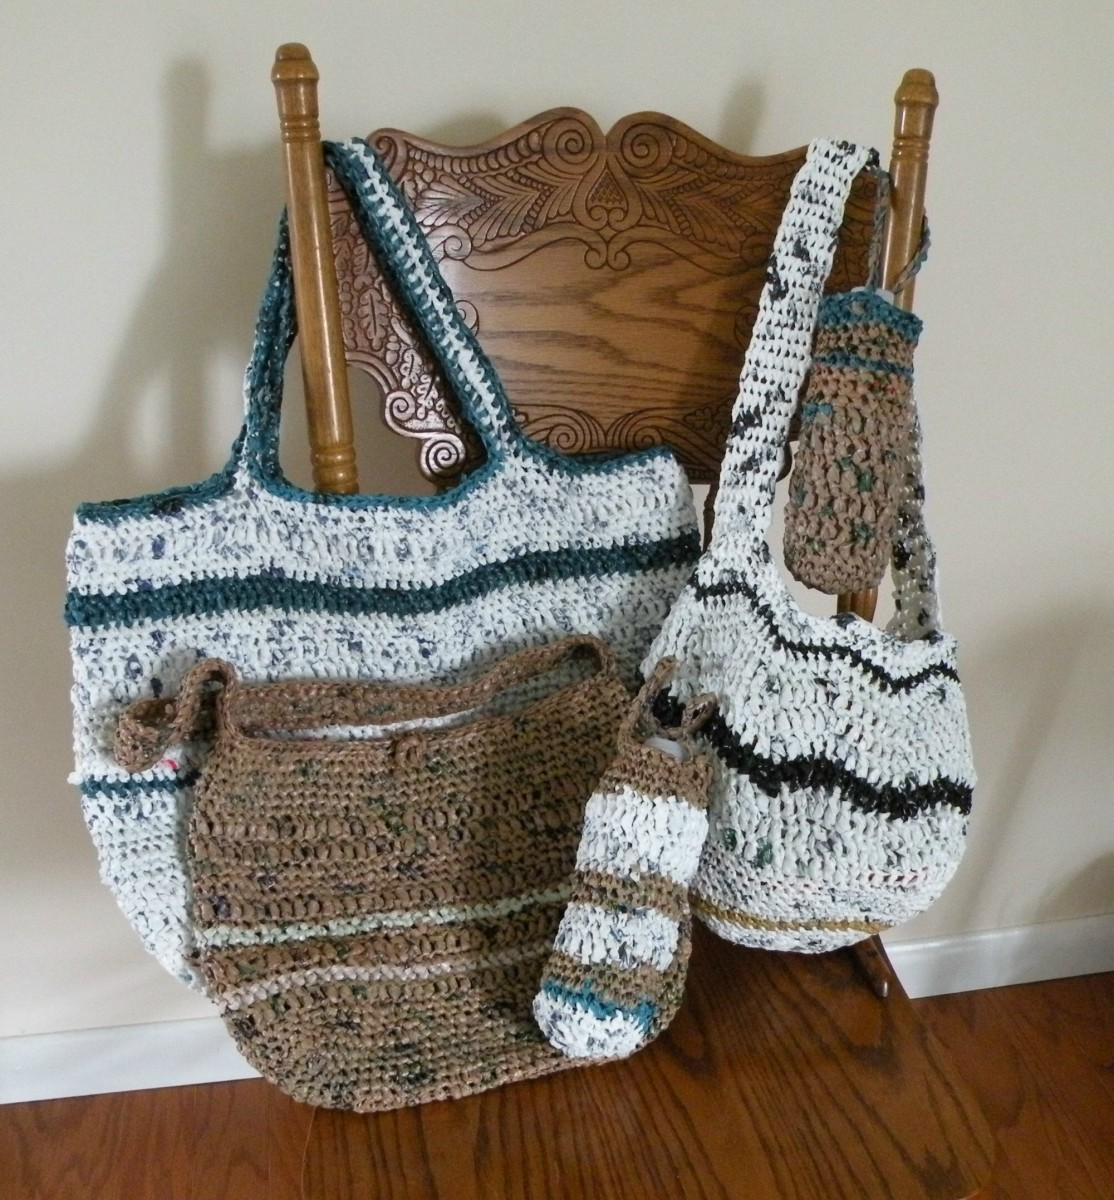 Crochet Beach Bag : Selection of tote bags made from recycle plastic grocery bags.